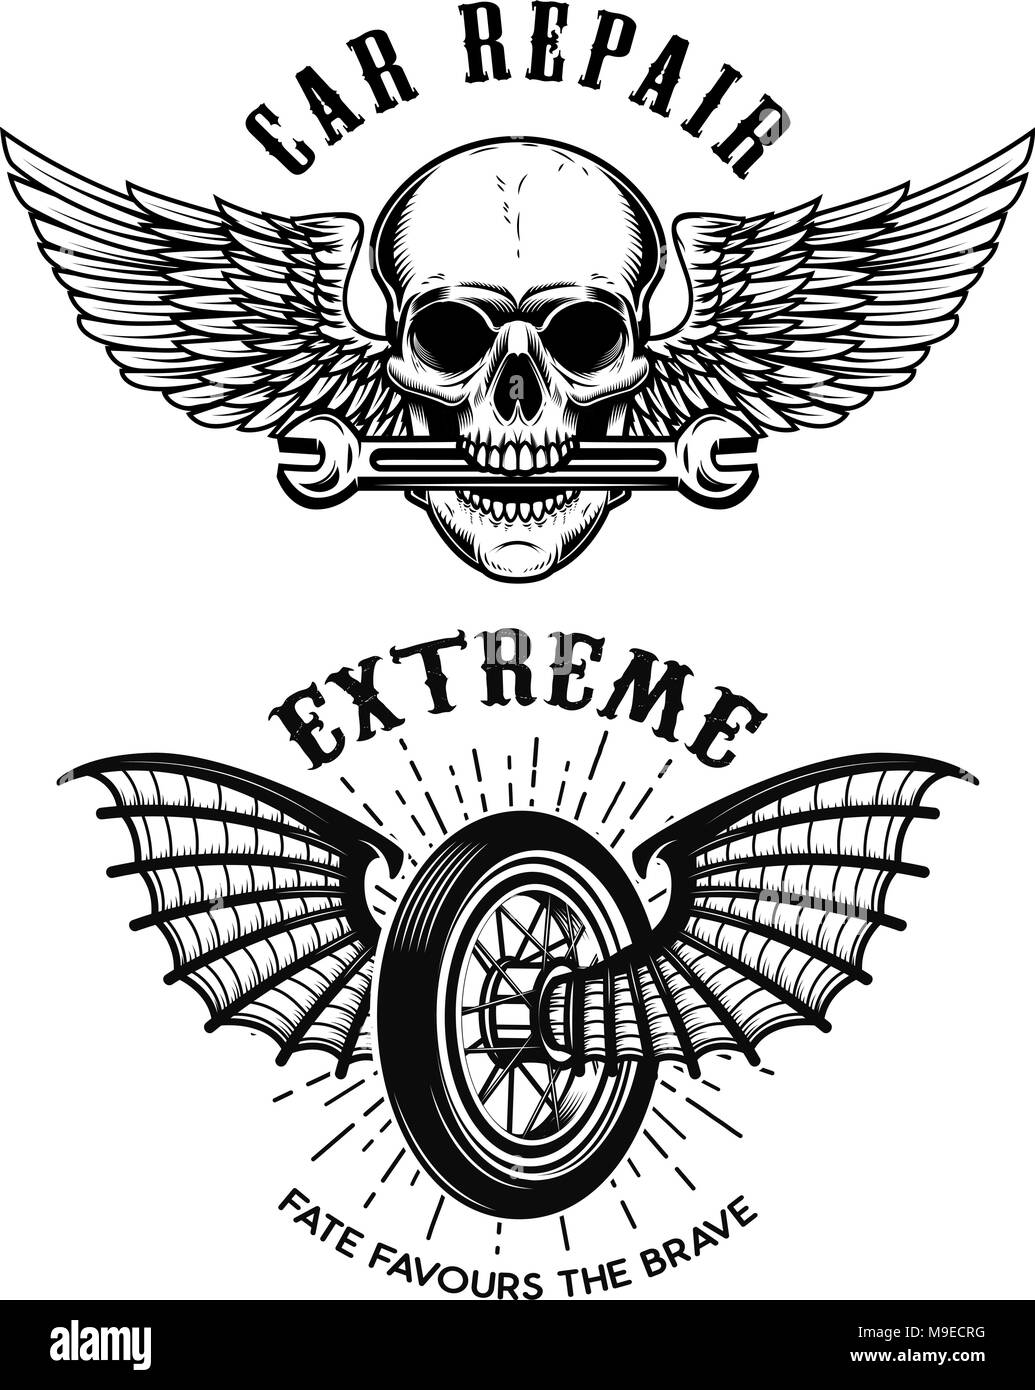 Car Repair Emblems Wheel With Wings Skull With Wings And Wrench